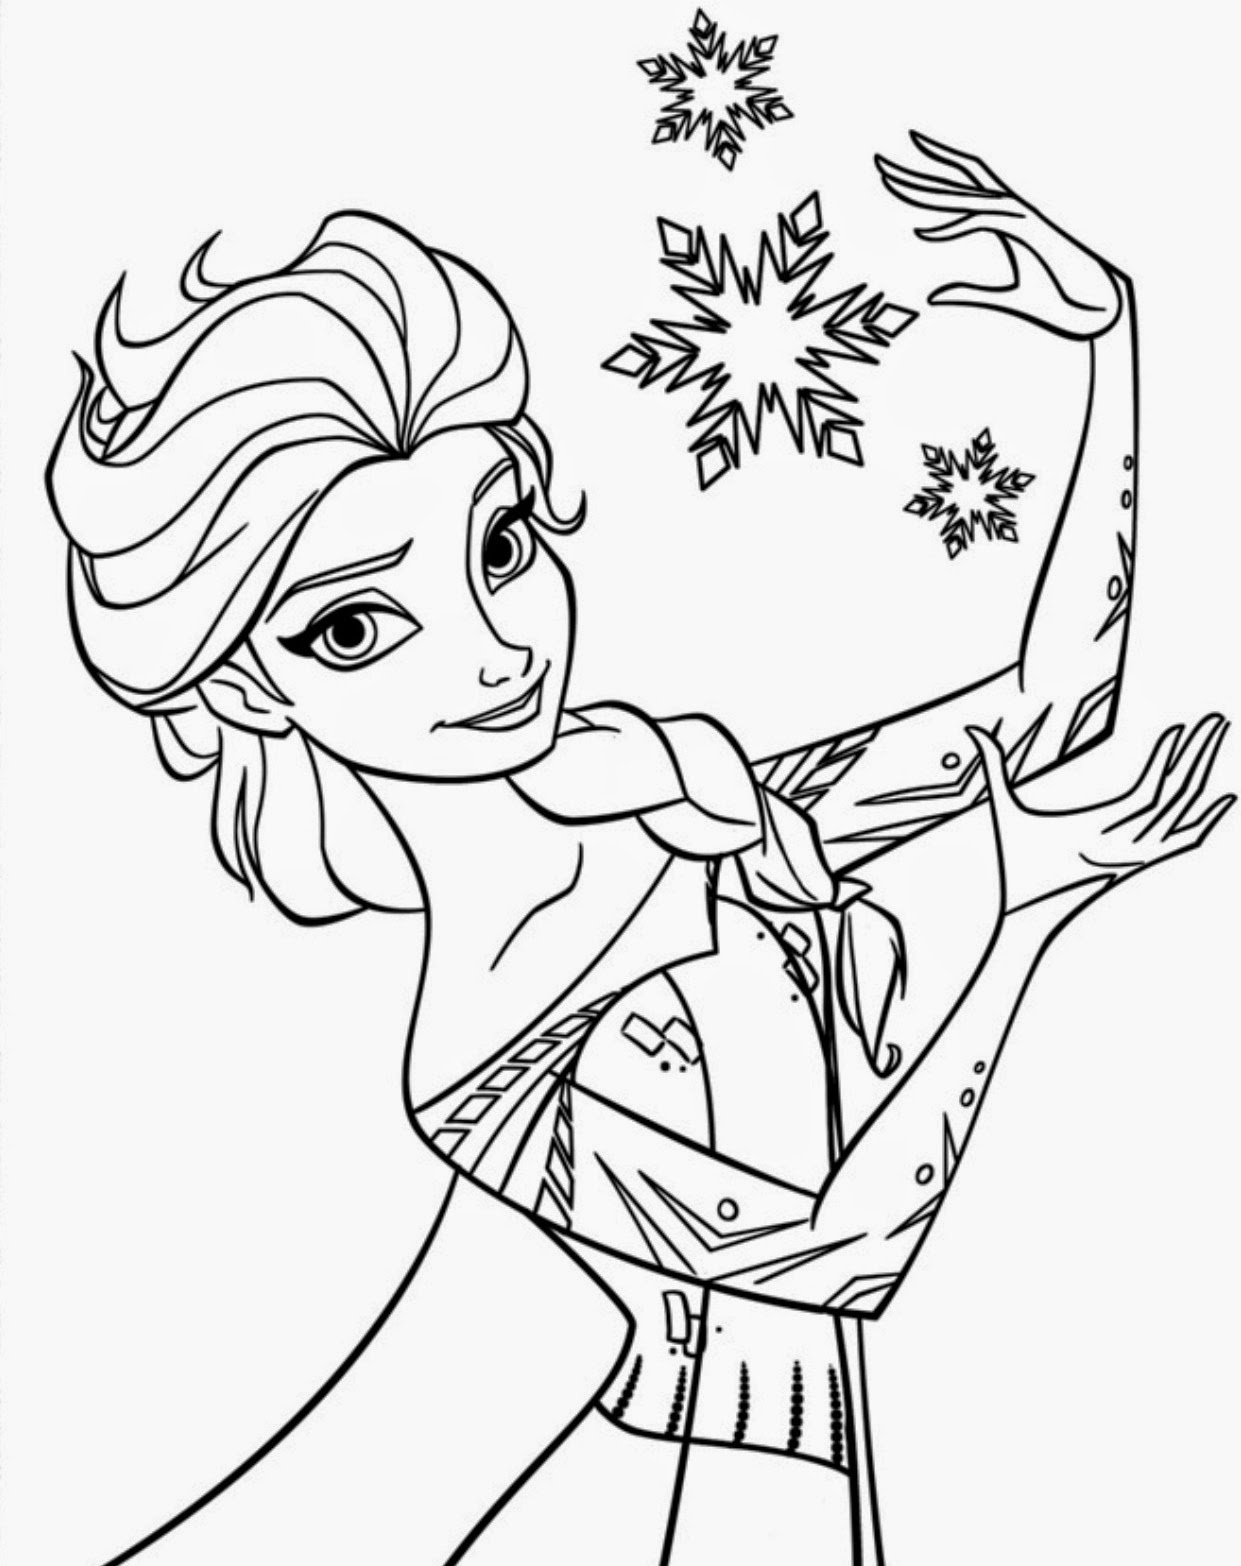 coloring disney characters pictures to colour disney39s bolt coloring pages disneyclipscom to pictures colour disney coloring characters